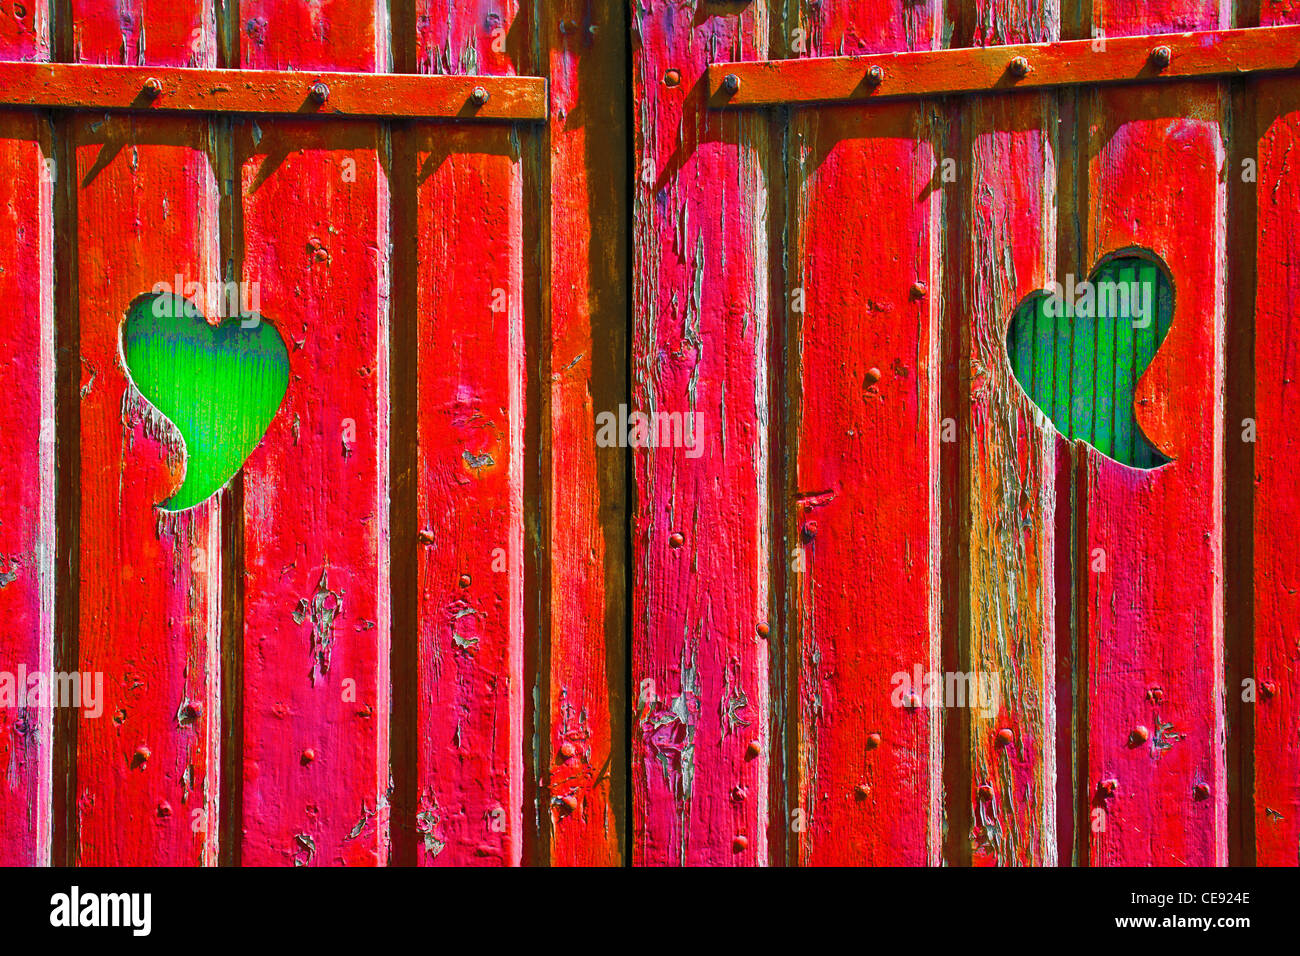 Two heart shapes cut into a red wooden gate revealing green wood behind, symbolic of envy, jealousy, passion - Stock Image